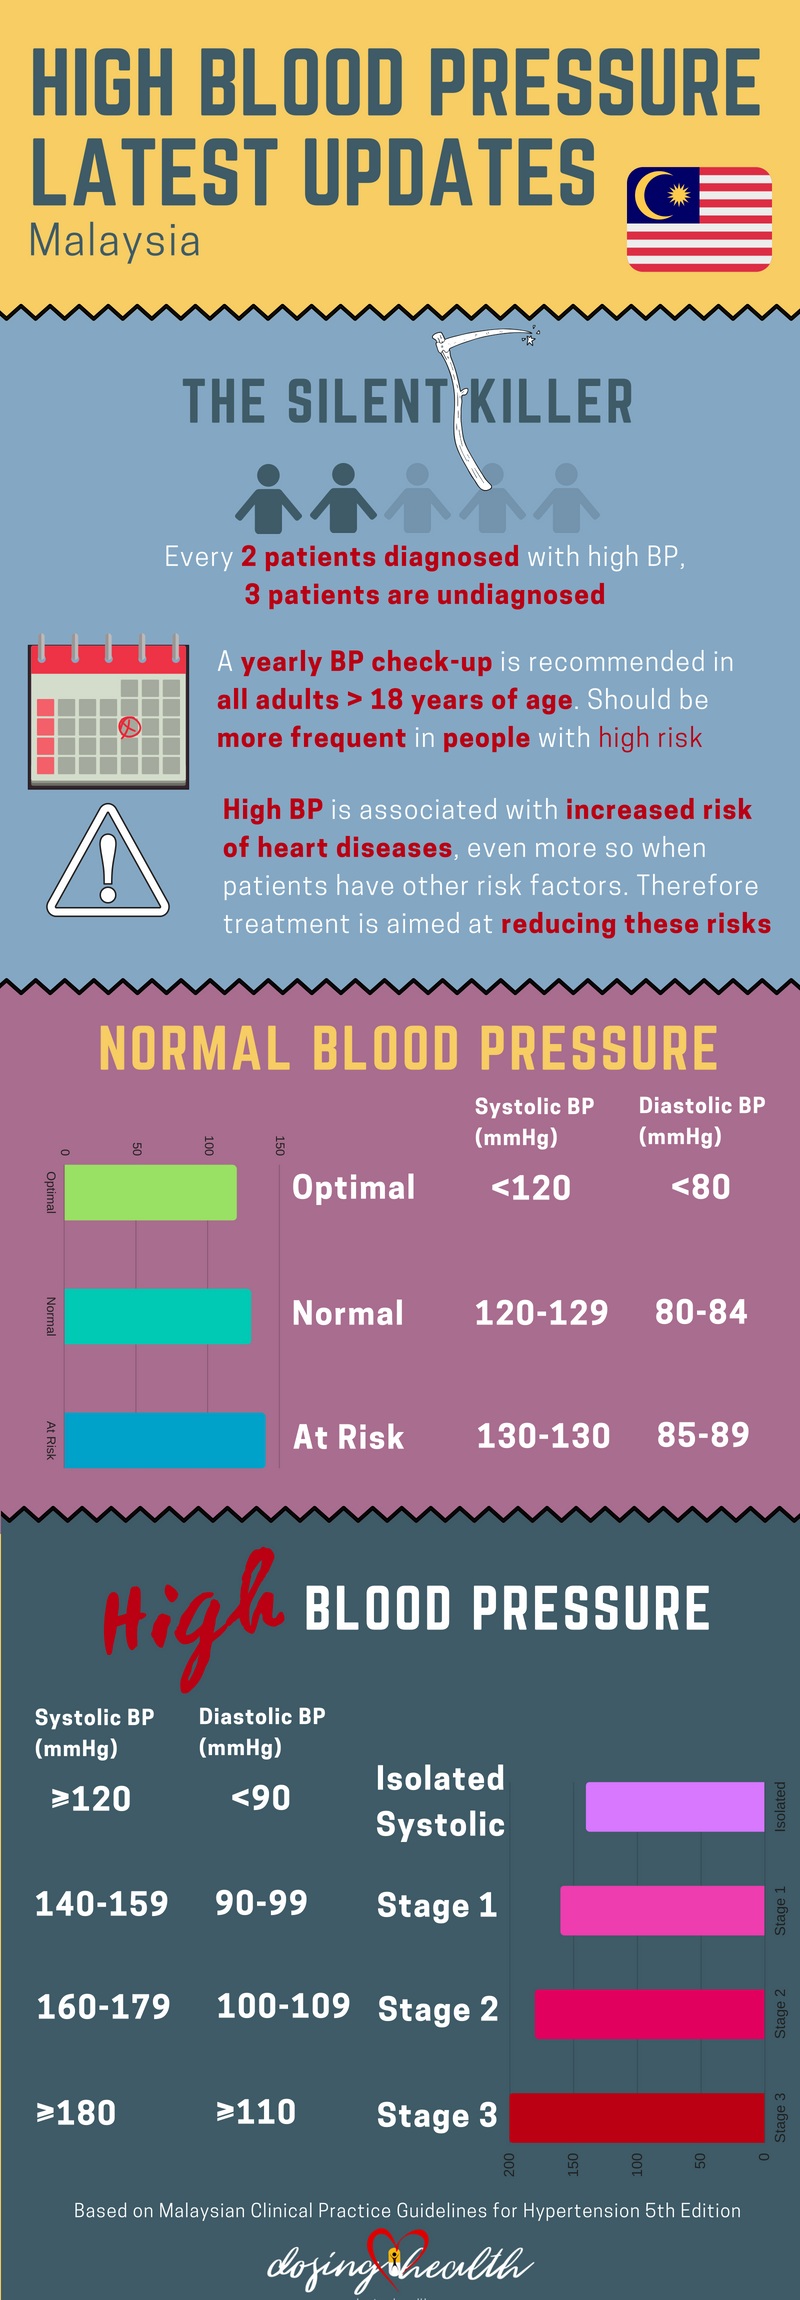 high blood pressureLatest updates